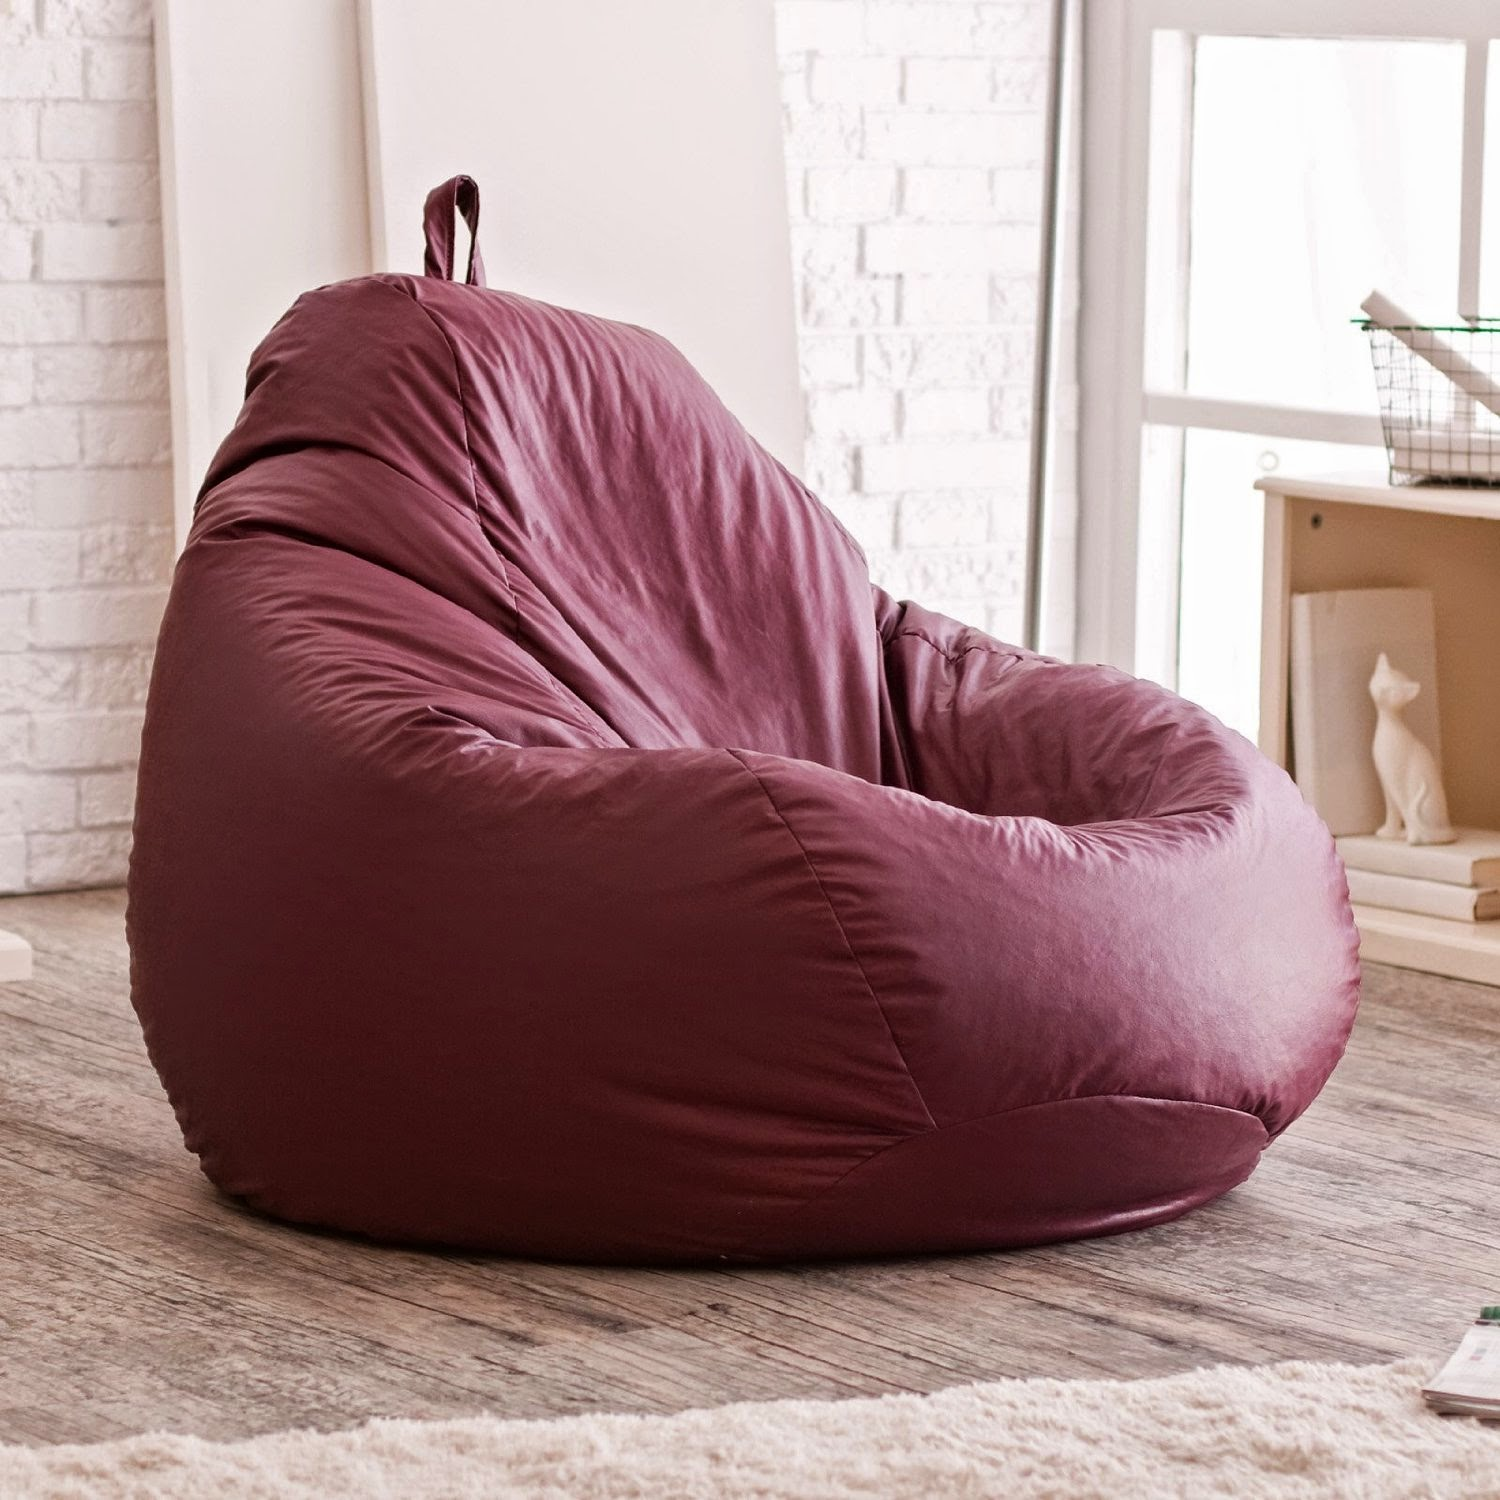 About Vinyl Bean Bag Chairs Home Design Inspiration And